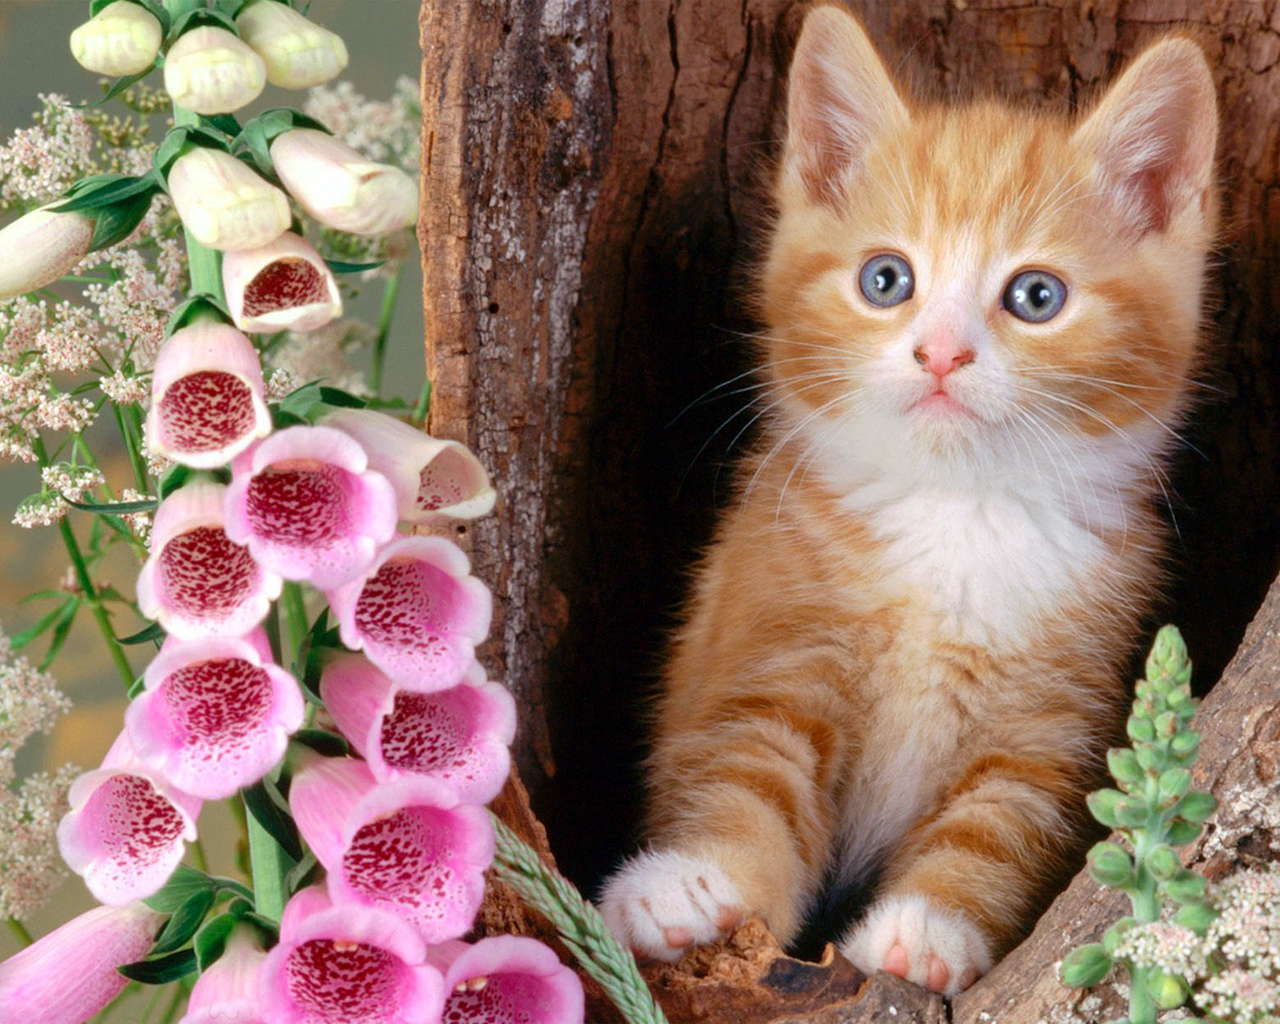 All wallpapers beautiful cats hd wallpapers - Cute kittens hd wallpaper free download ...